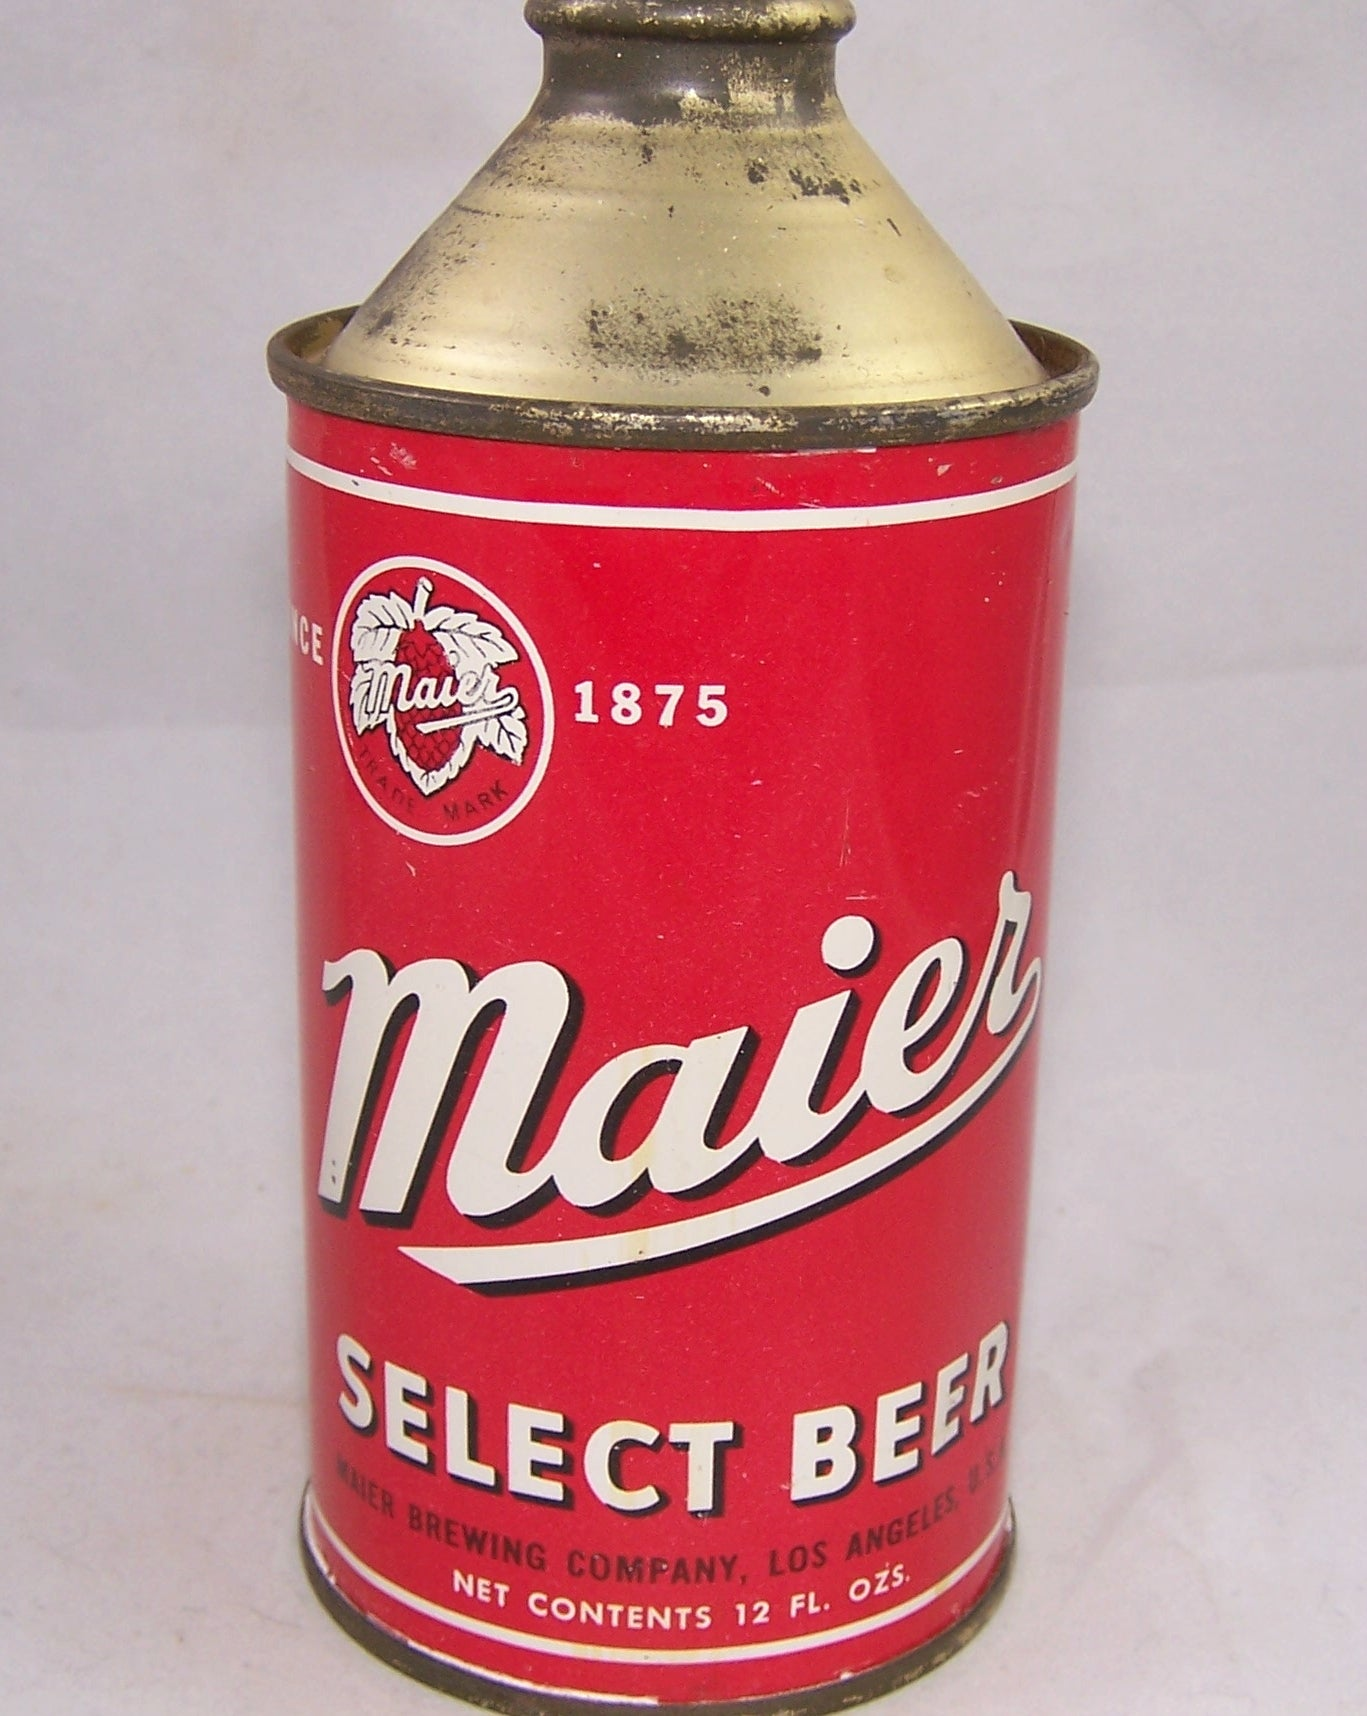 Maier Select Beer, USBC 173-12, Grade 1/1+ Sold on 10/01/17